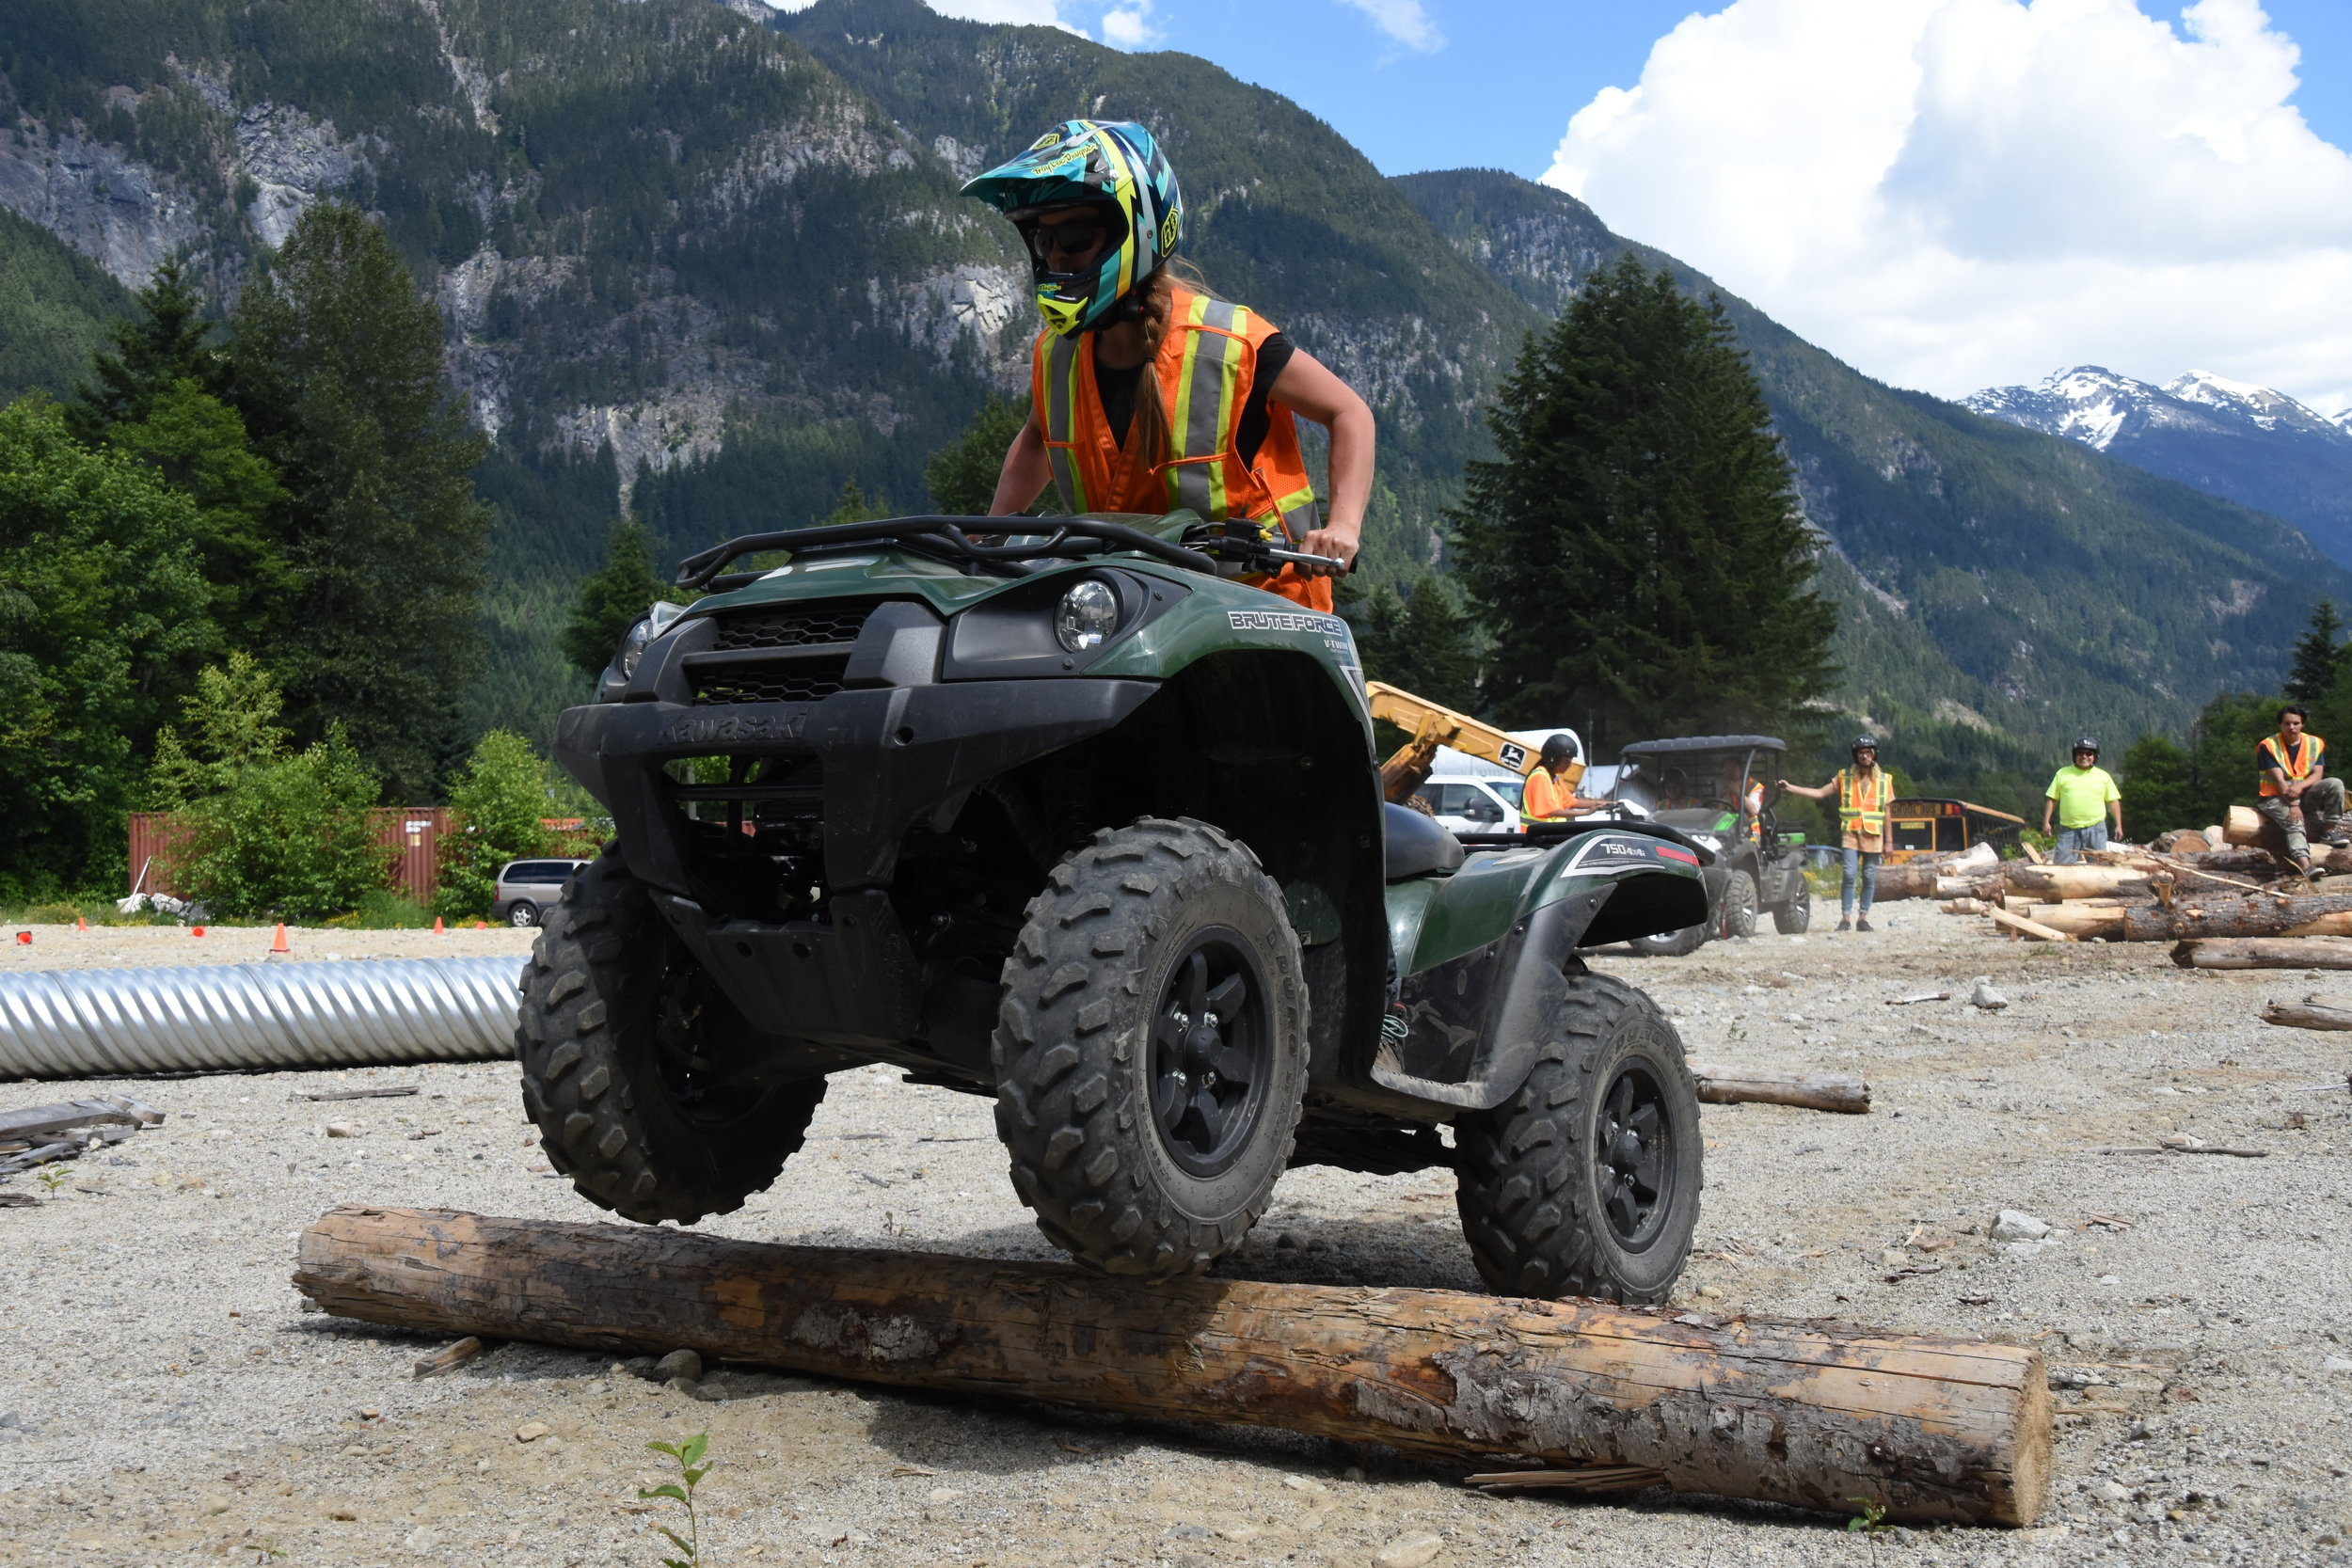 Stillwater forestry students will complete their ATV/UTV Safe Operator certificate during our programs.